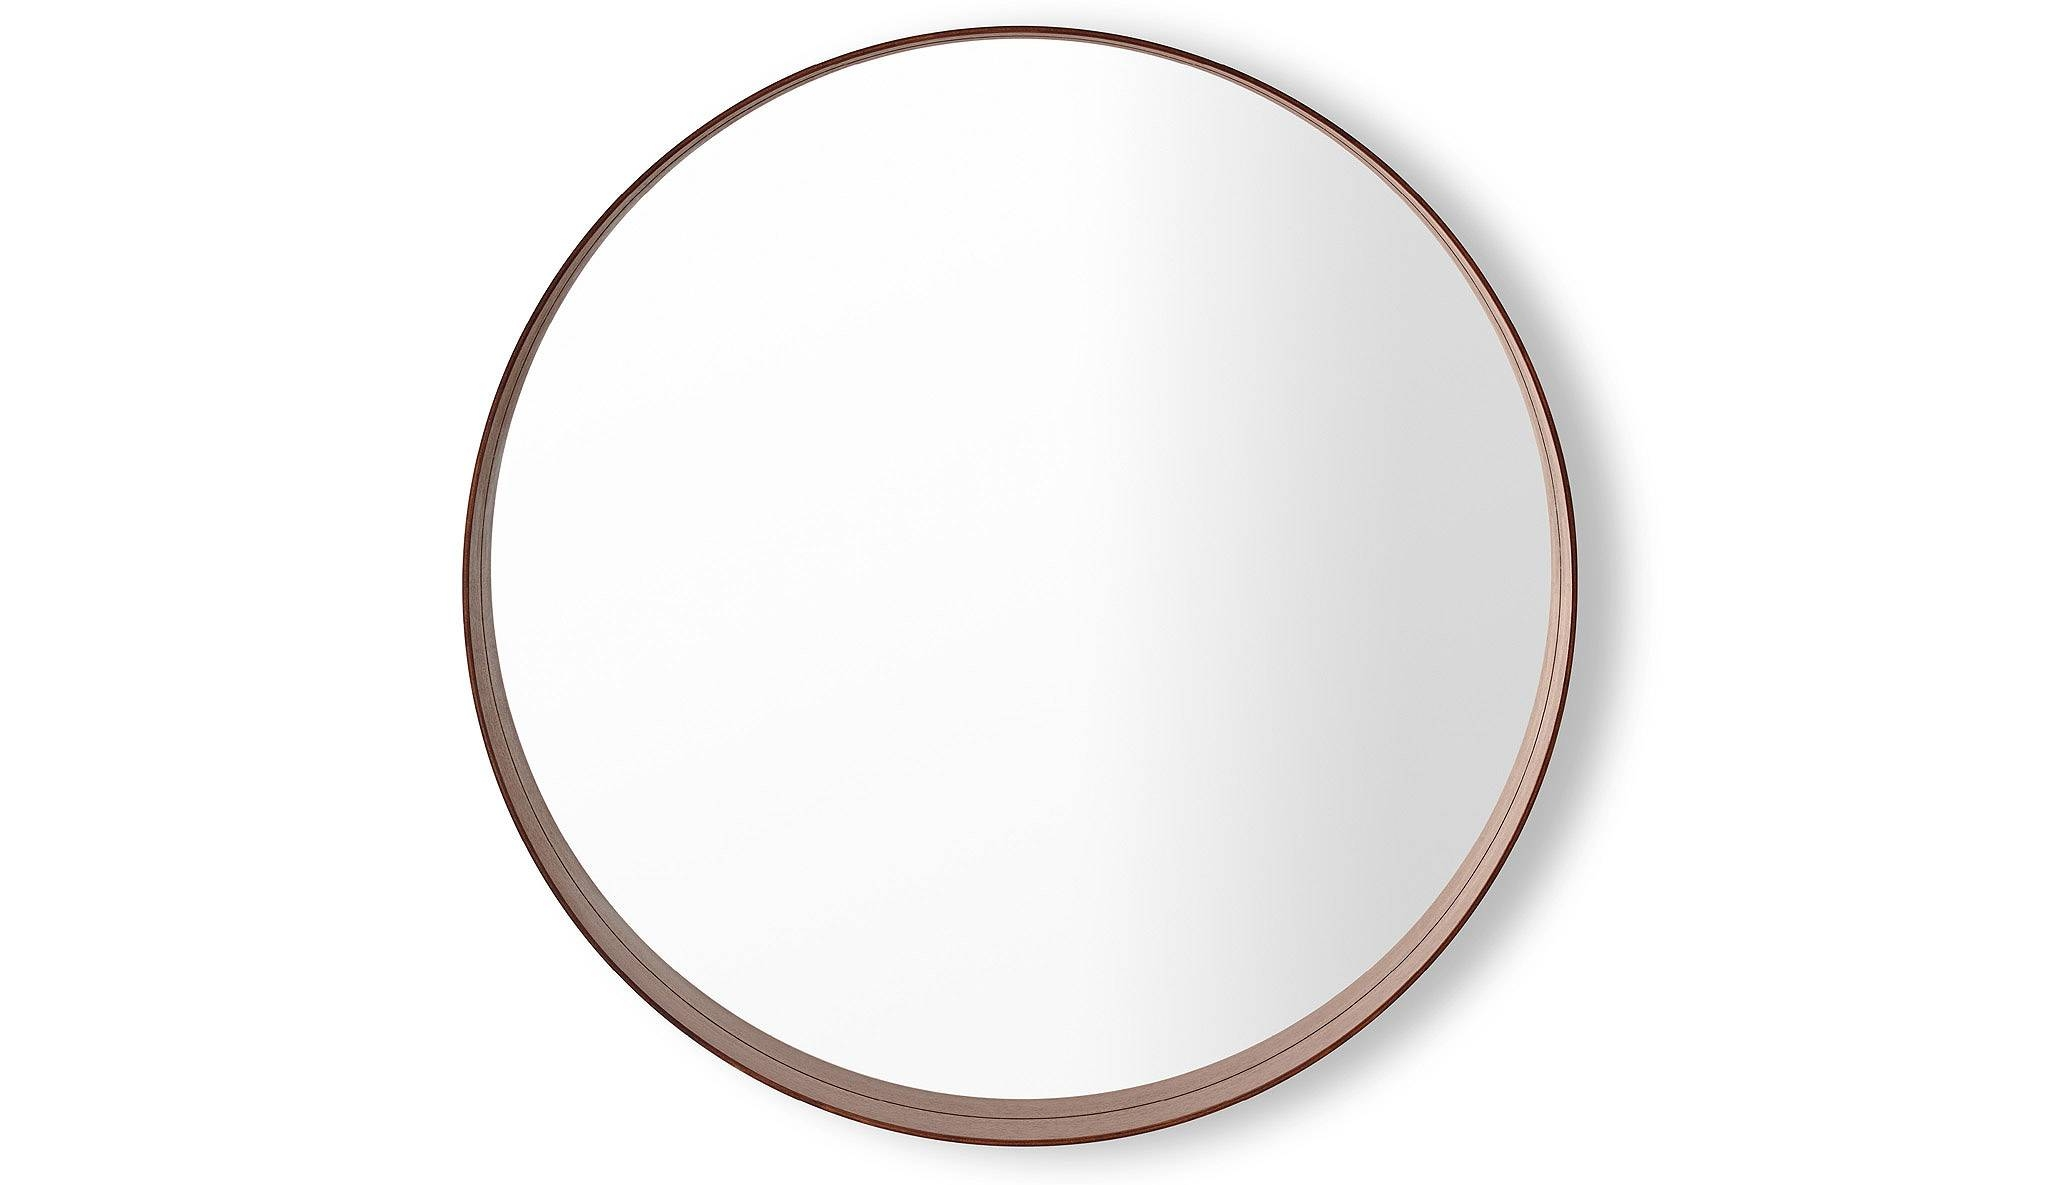 Round Mirrors - Circular & Oval Mirrors - Ikea in Large Circle Mirrors (Image 24 of 25)